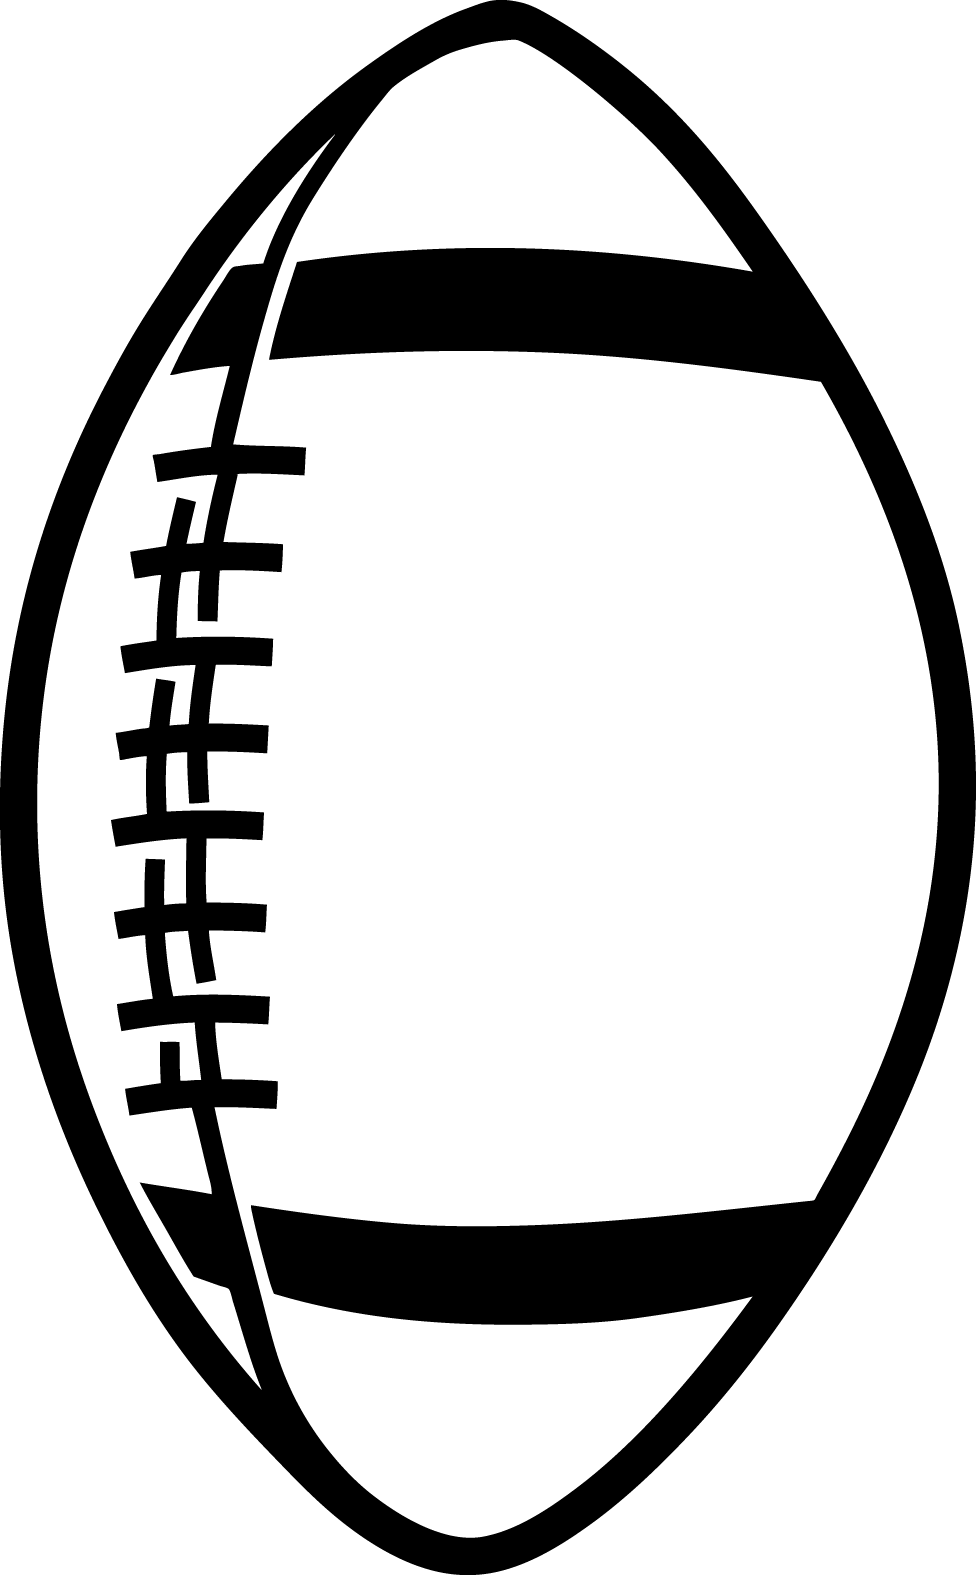 Football outline image free clipart images